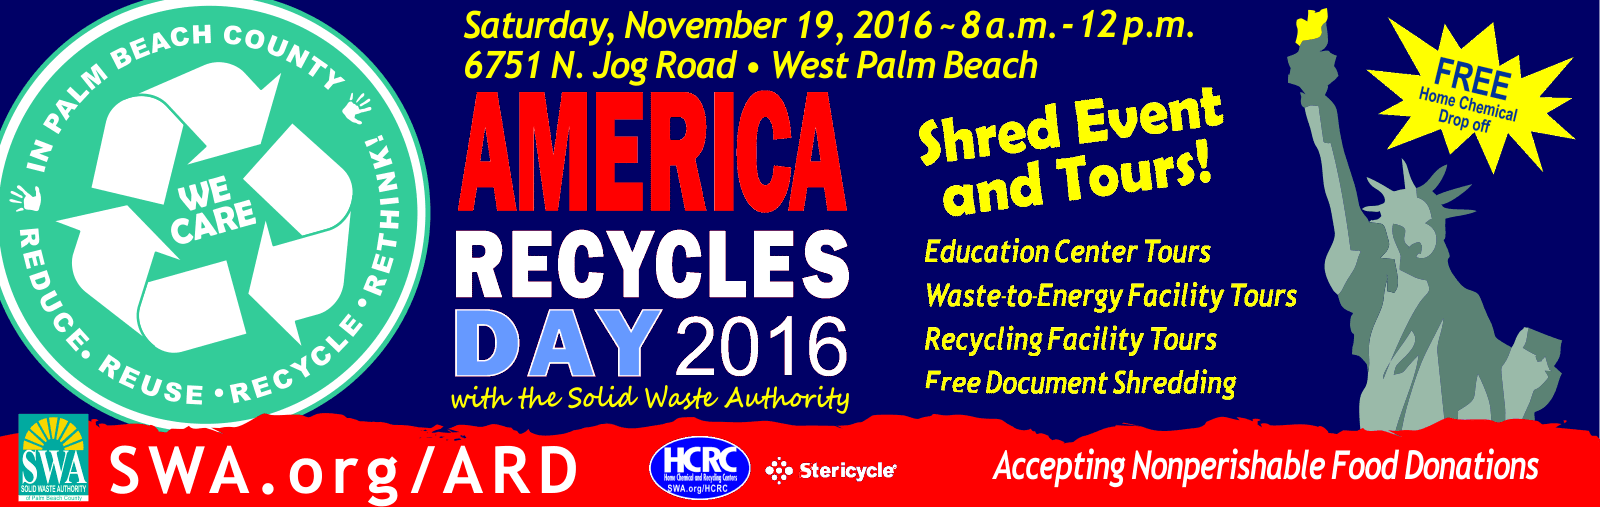 2016 America Recycles Day Celebration